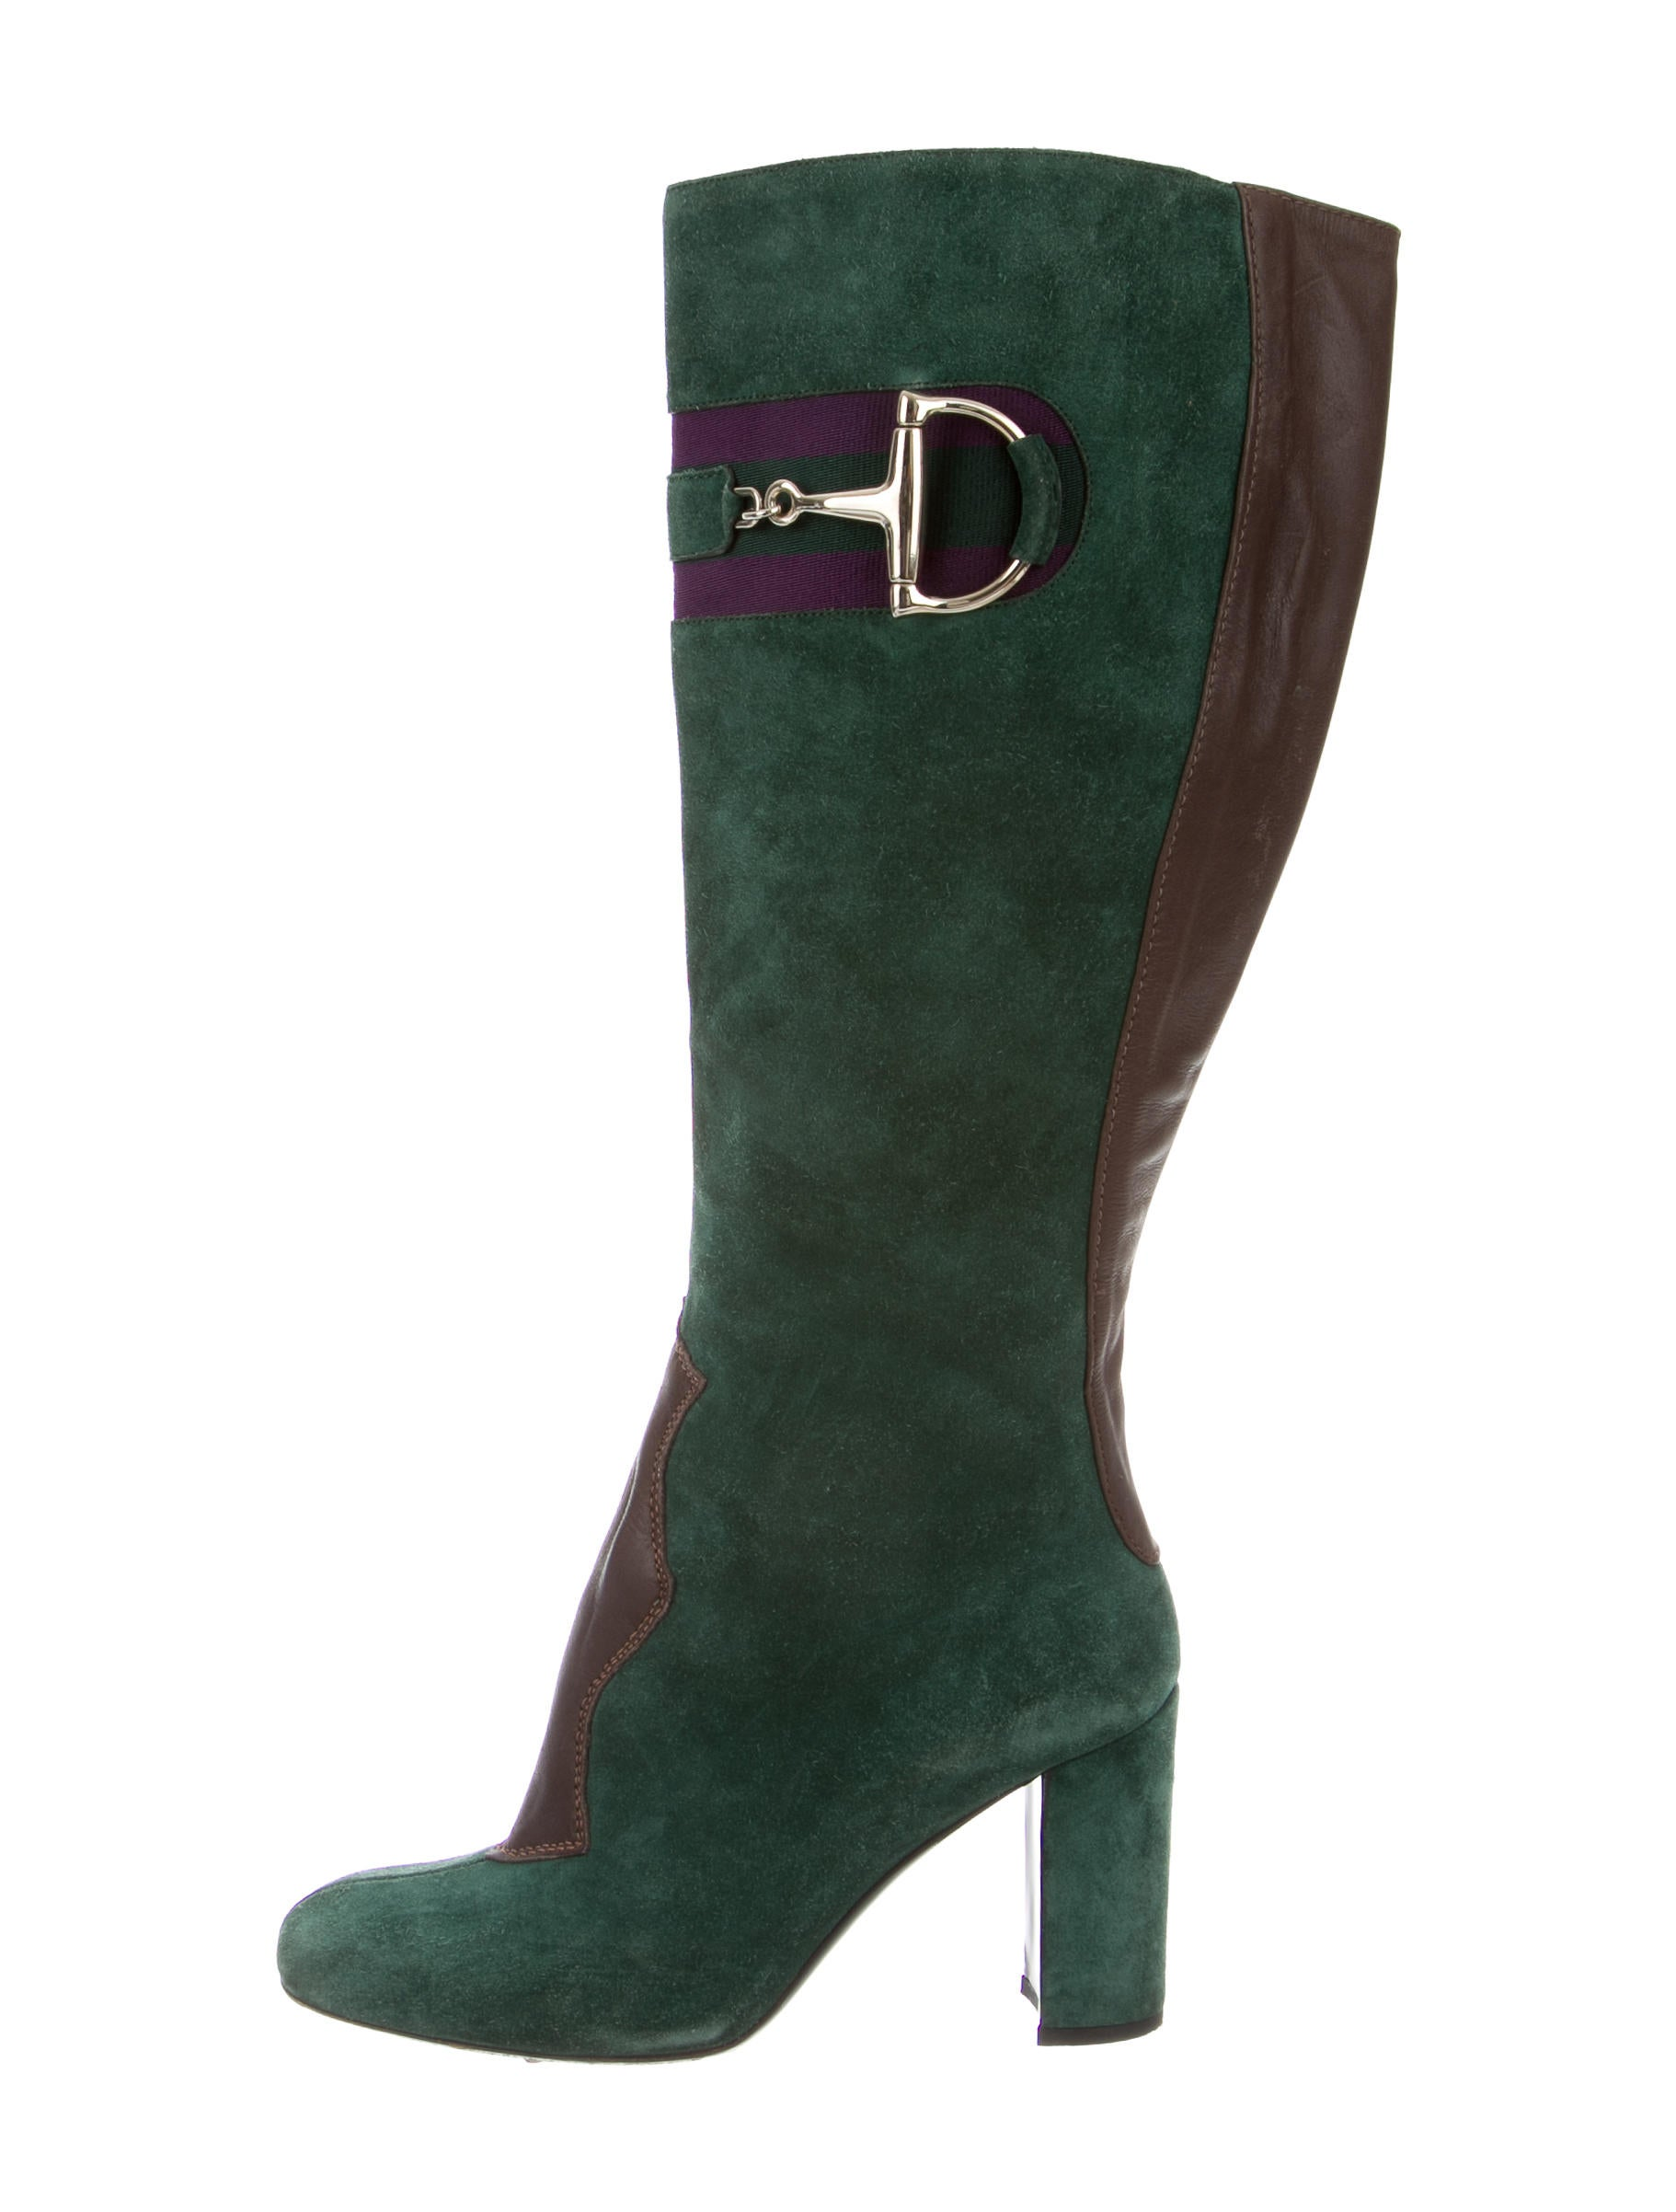 gucci suede knee high boots shoes guc102778 the realreal